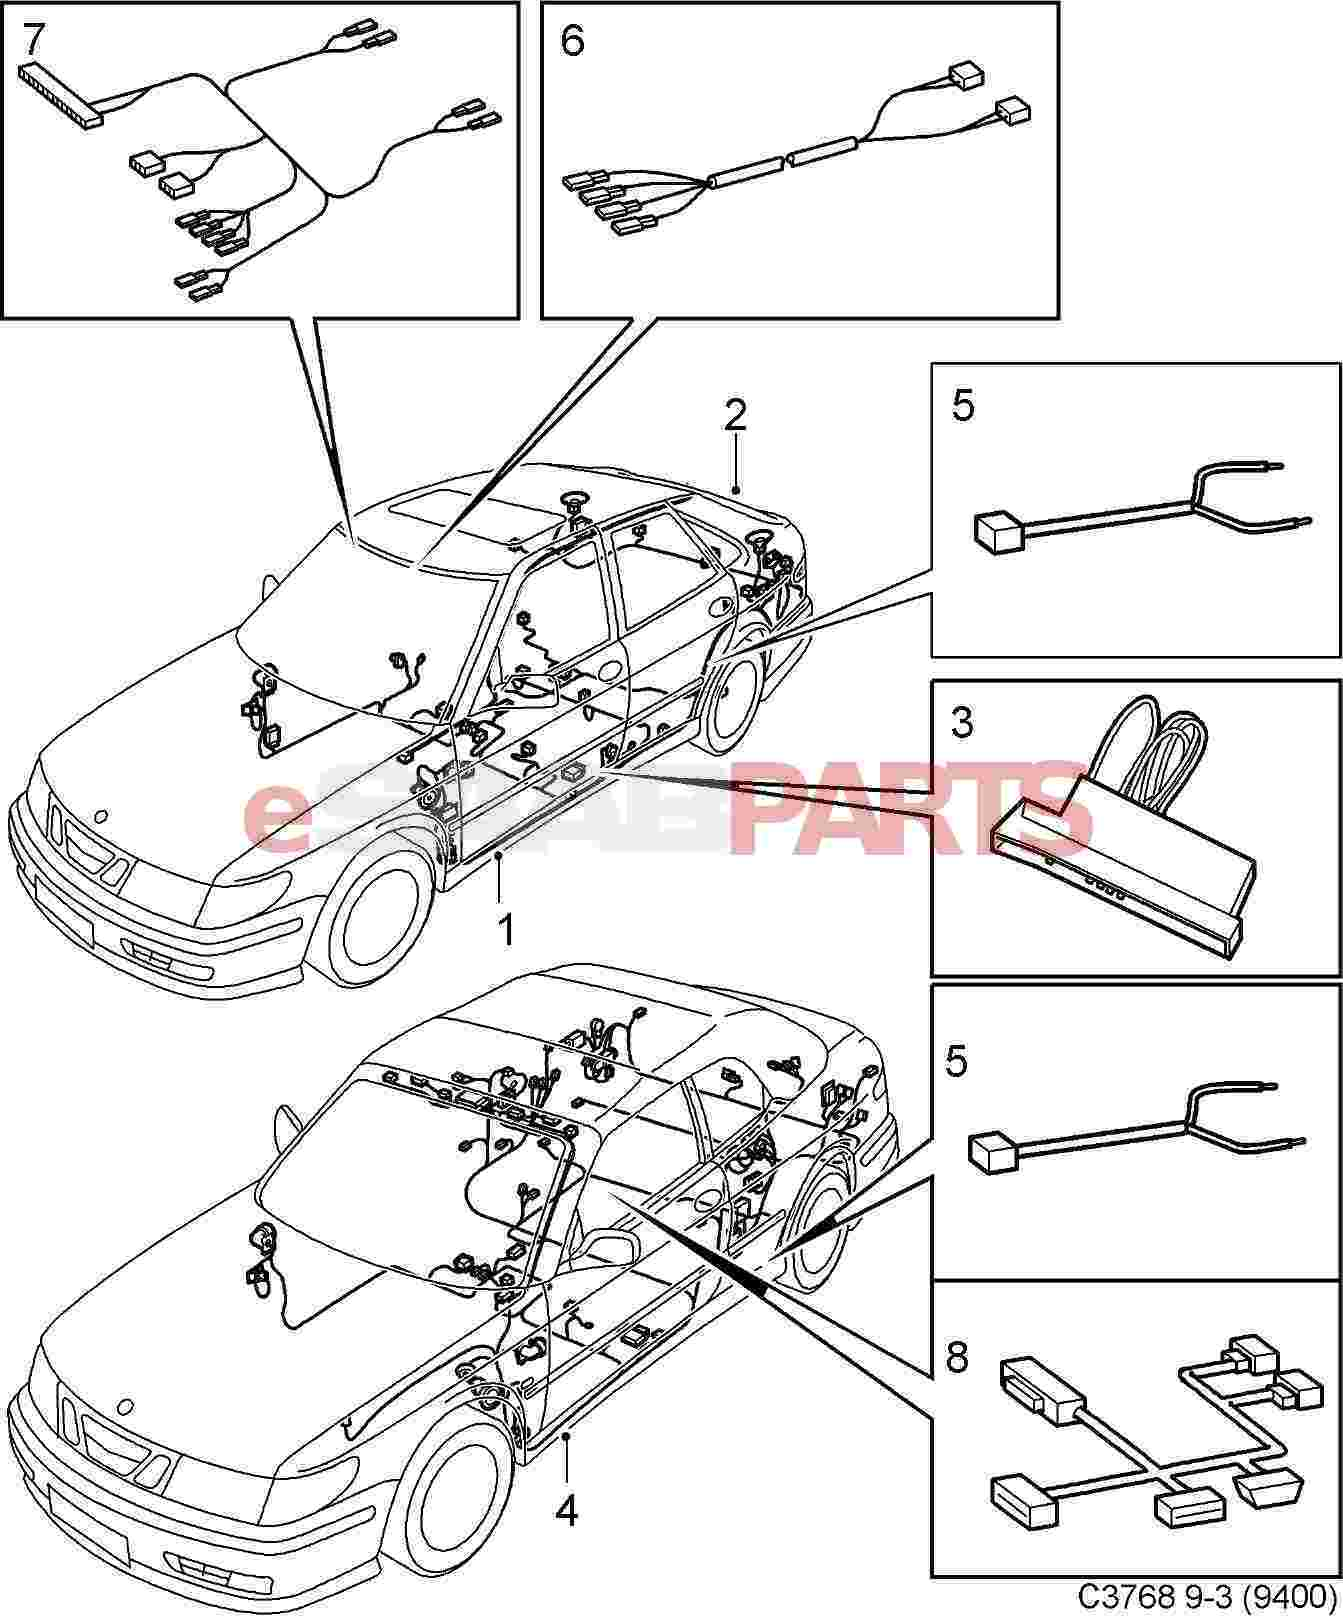 saab 9 3 tail light wiring harness